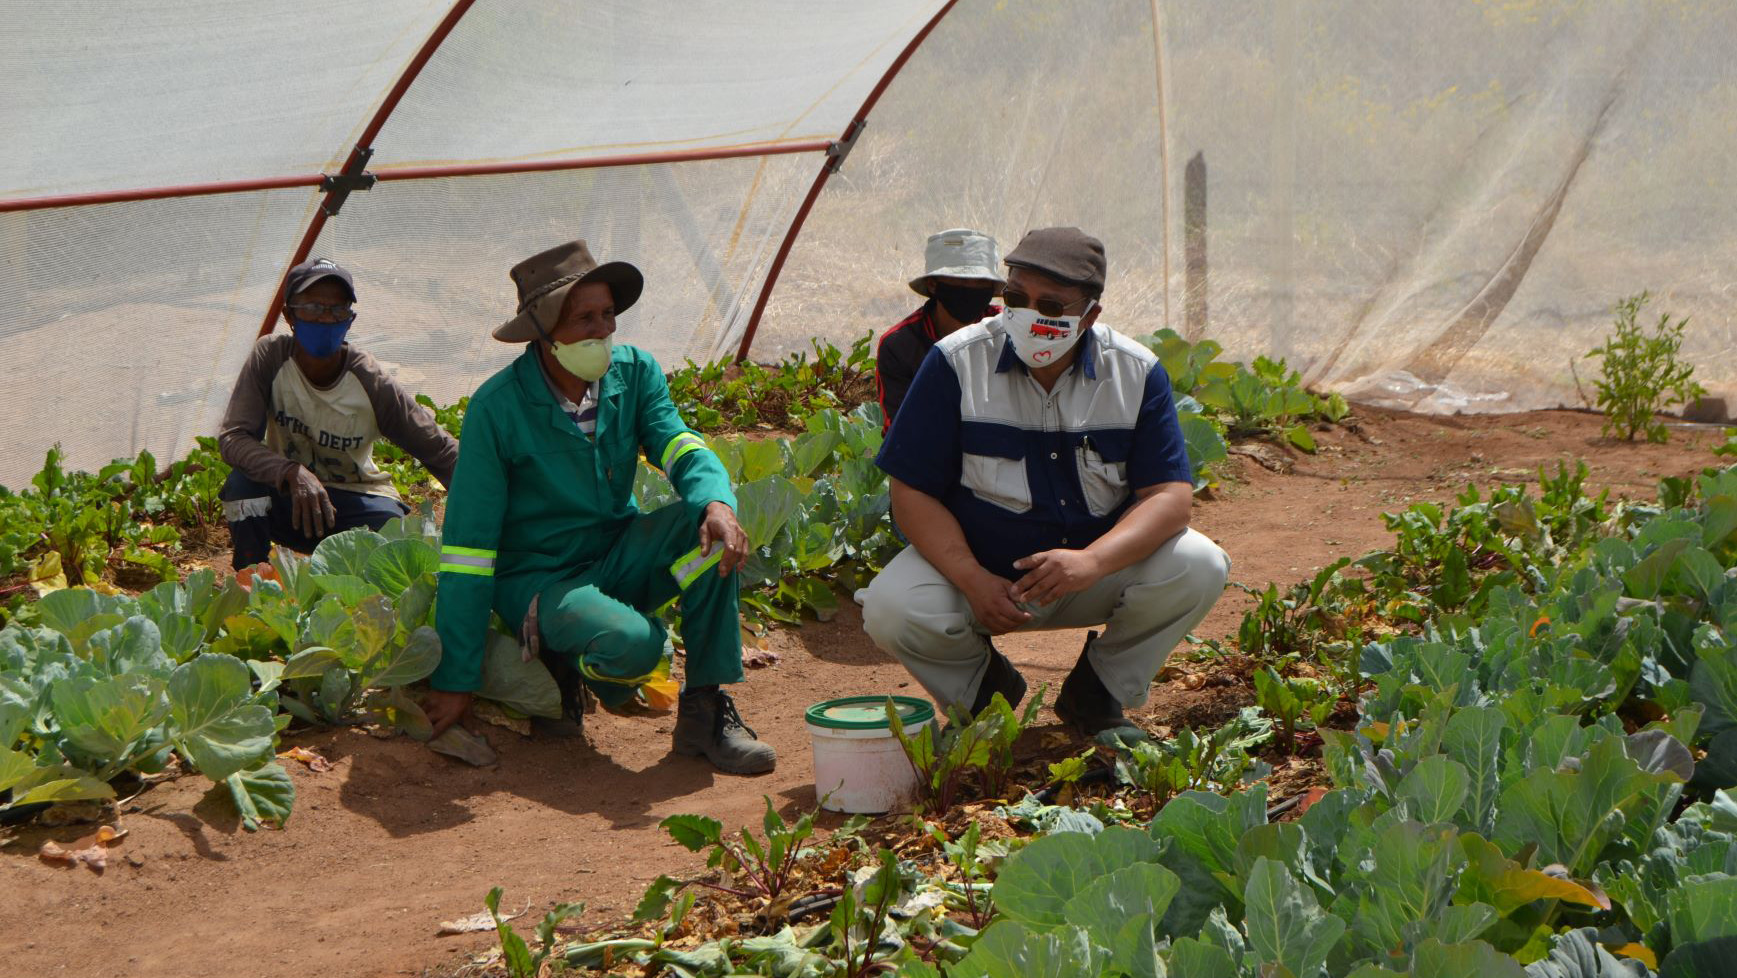 Western Cape minister of agriculture, Dr Ivan Meyer, visited several vegetable garden projects in the Namaqualand region of the Western Cape. Photo: Supplied